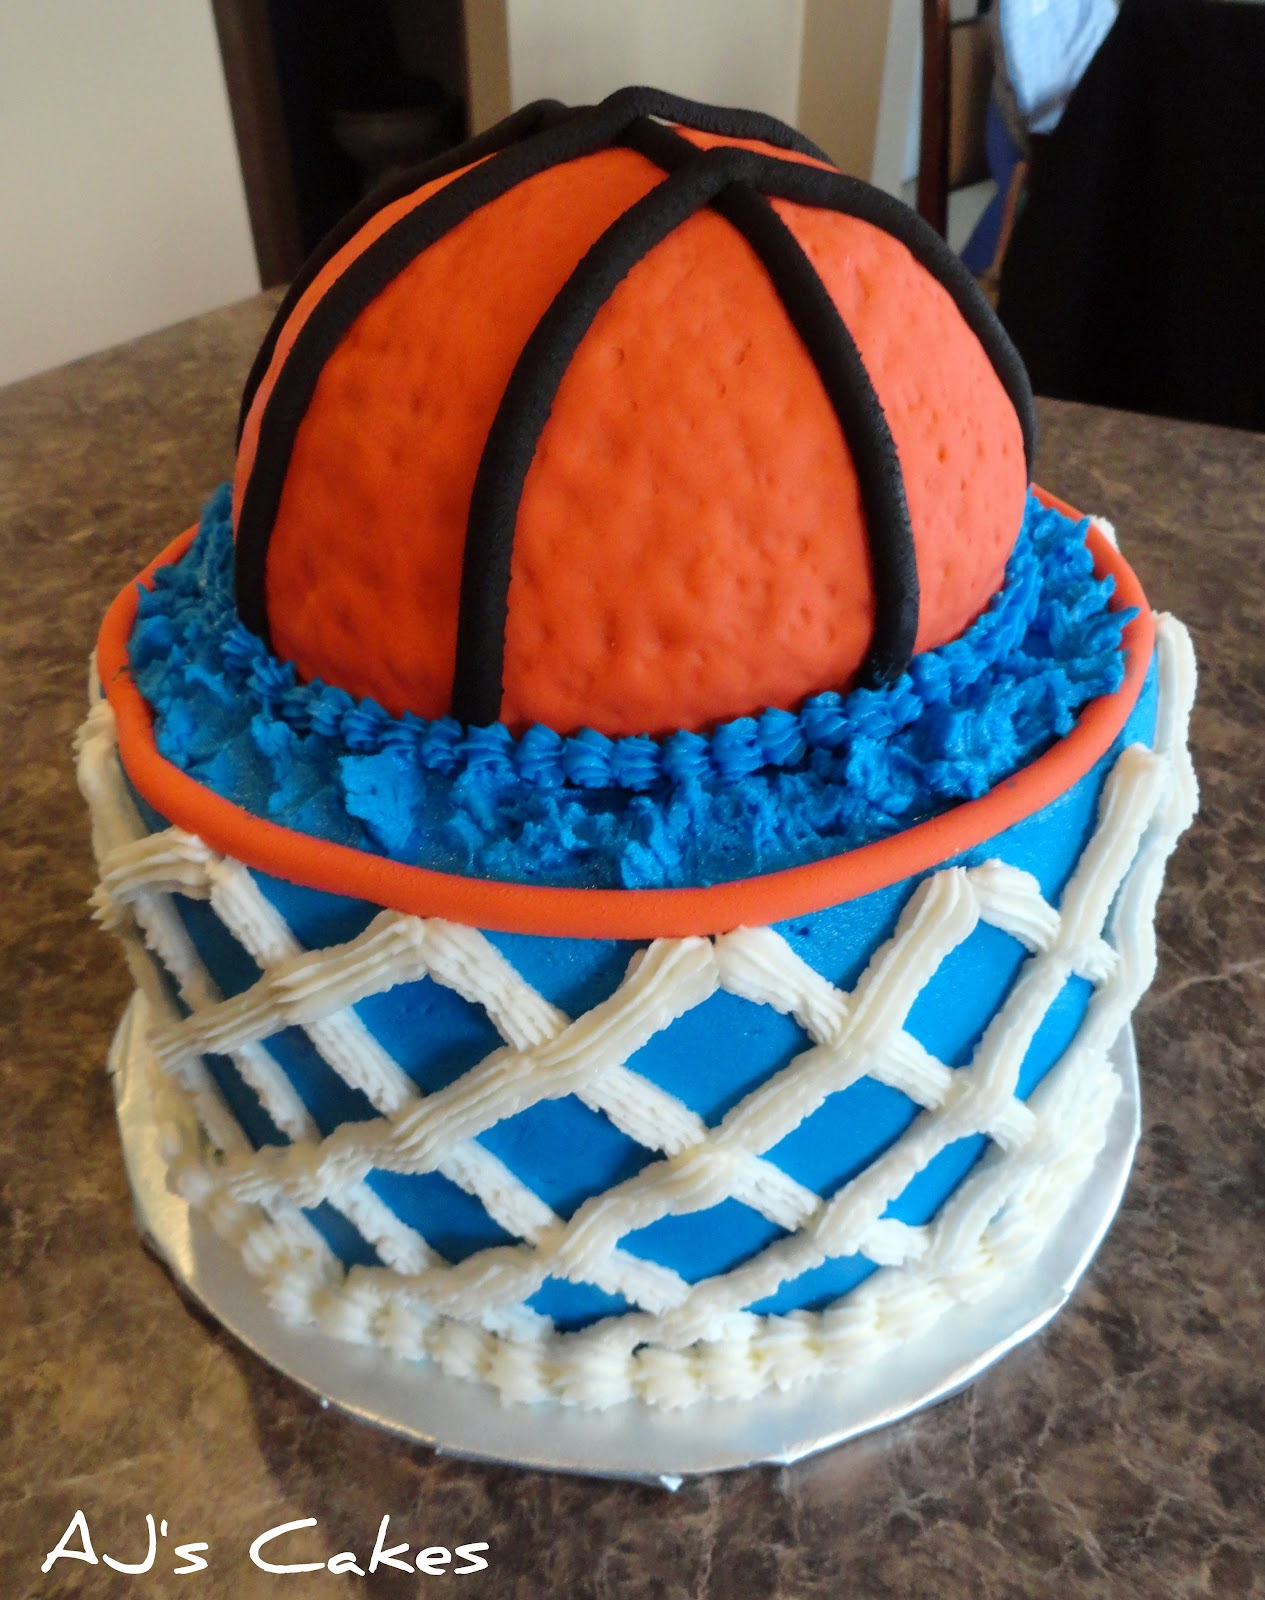 Cake Images Basketball : AJ s Cakes: Basketball and Water Cake